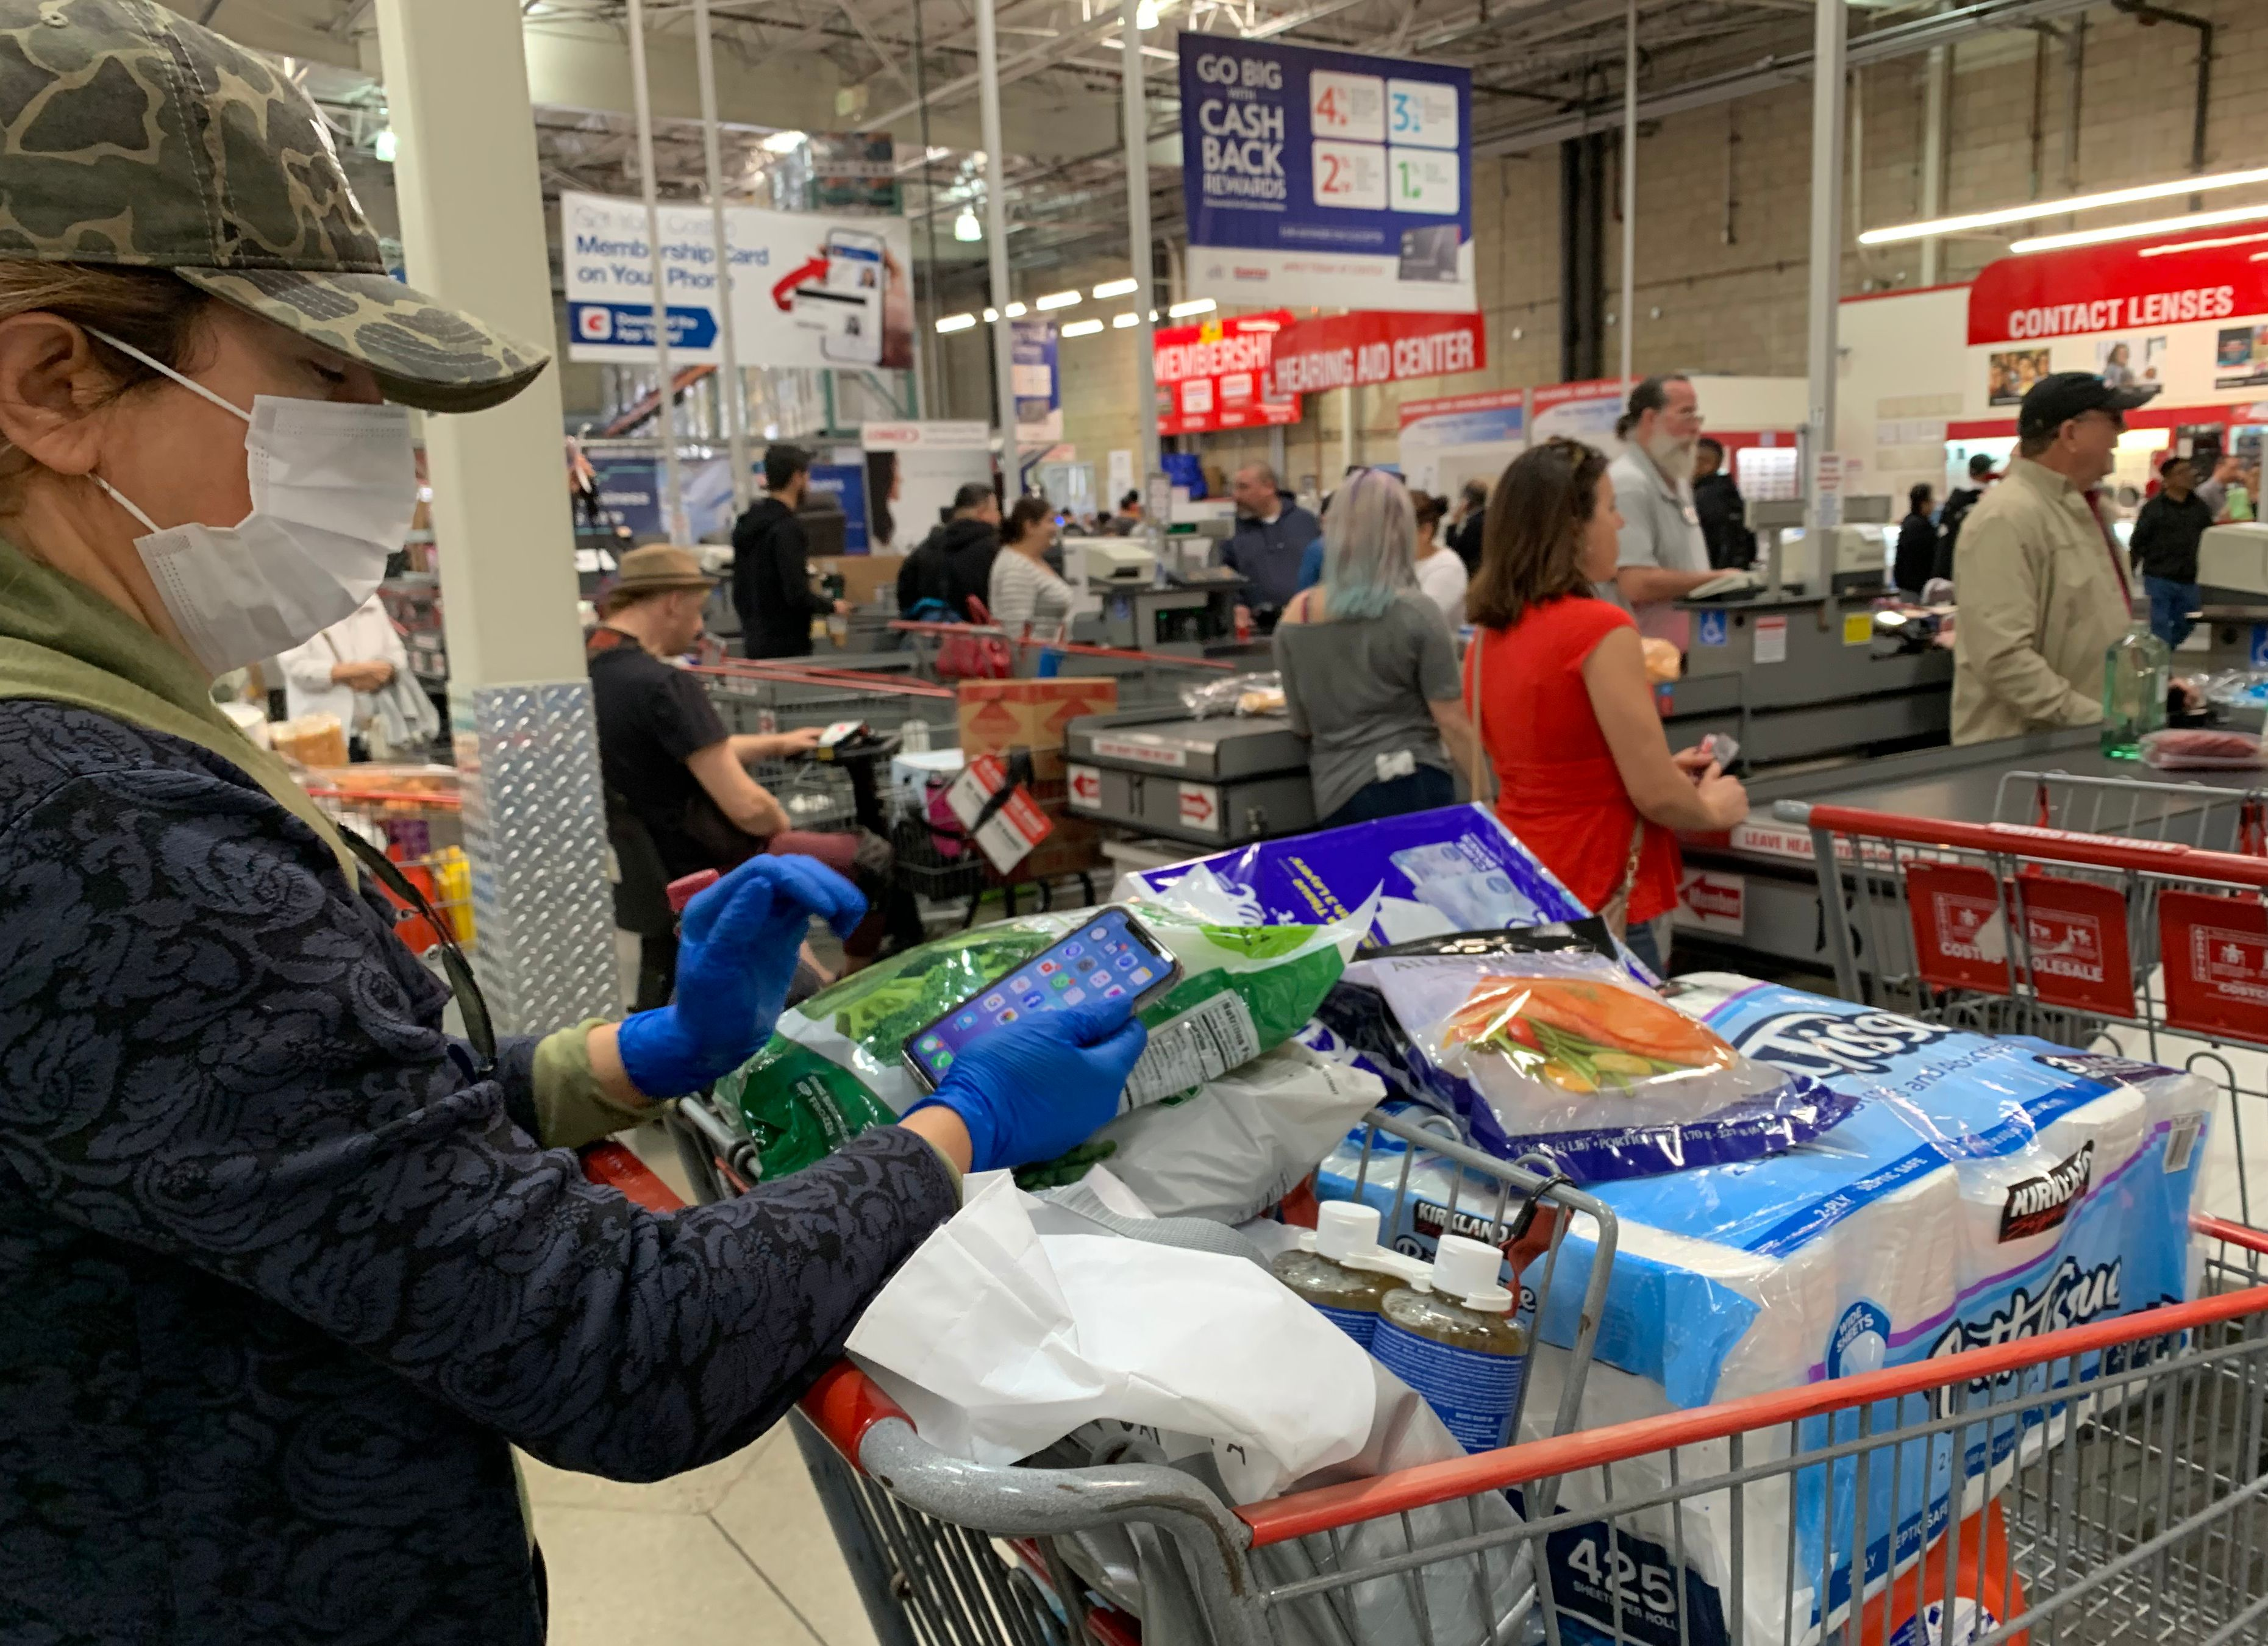 Customers wait in line to buy water and other supplies, on fears that the coronavirus, COVID-19, will spread and force people to stay indoors, at a Costco in Burbank, California on March 6, 2020. - US lawmakers passed an emergency USD 8.3 billion spending bill to combat the coronavirus on Thursday as the number of cases surged in the country's northwest and deaths reached 12. Since then the toll has risen to 12 and the virus has spread to at least 15 states -- the latest being Maryland adjacent to the nation's capital Washington. (Photo by Robyn BECK / AFP) (Photo by ROBYN BECK/AFP via Getty Images)